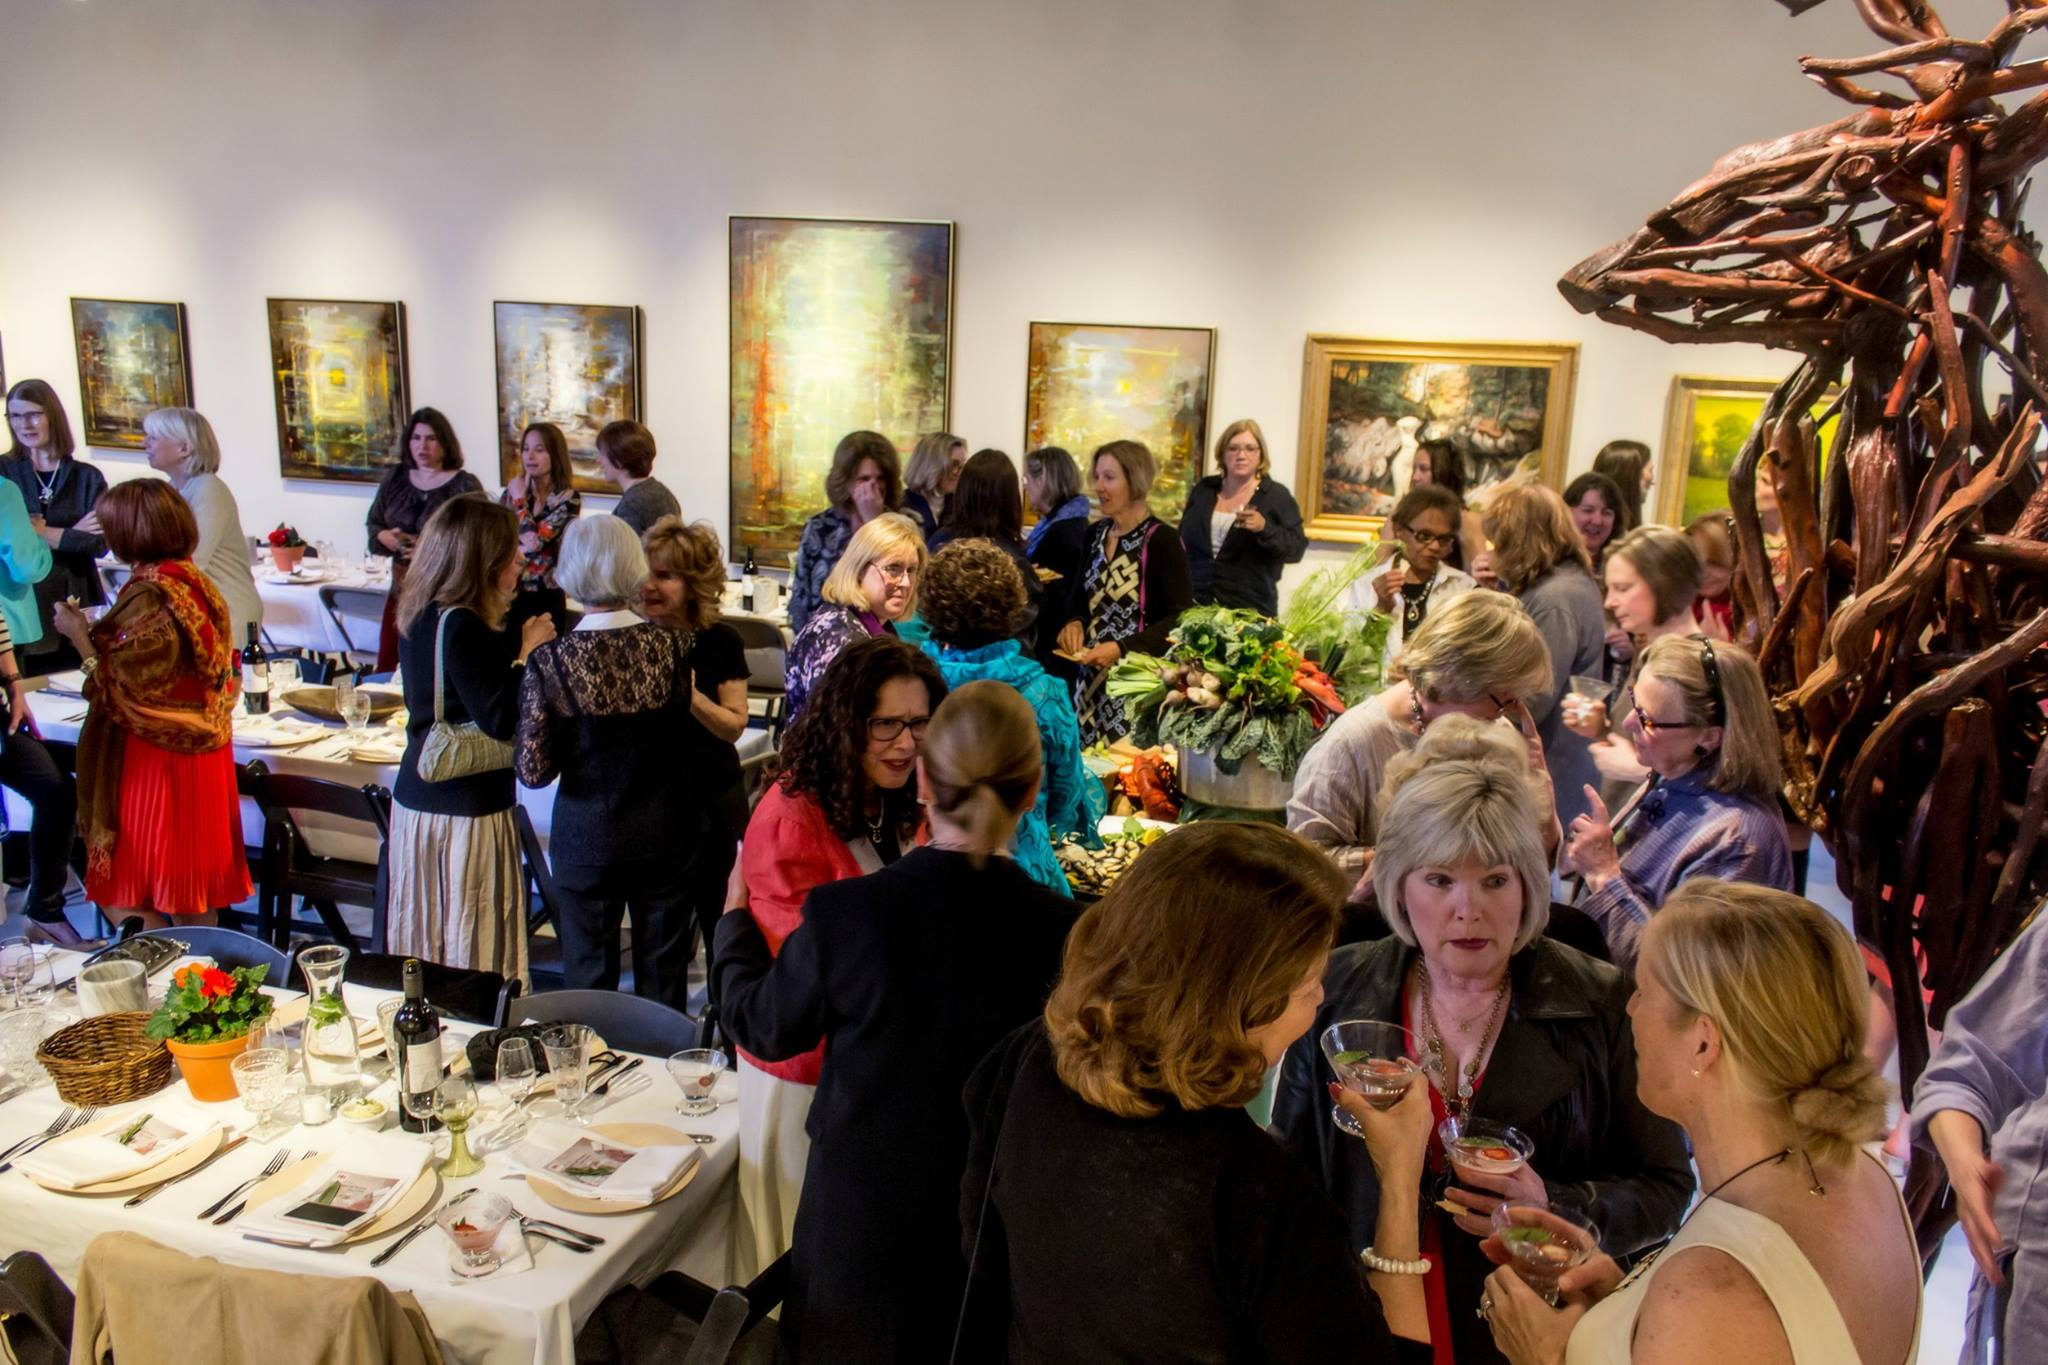 100 women dine together on locally grown food cooked by locally chefs.